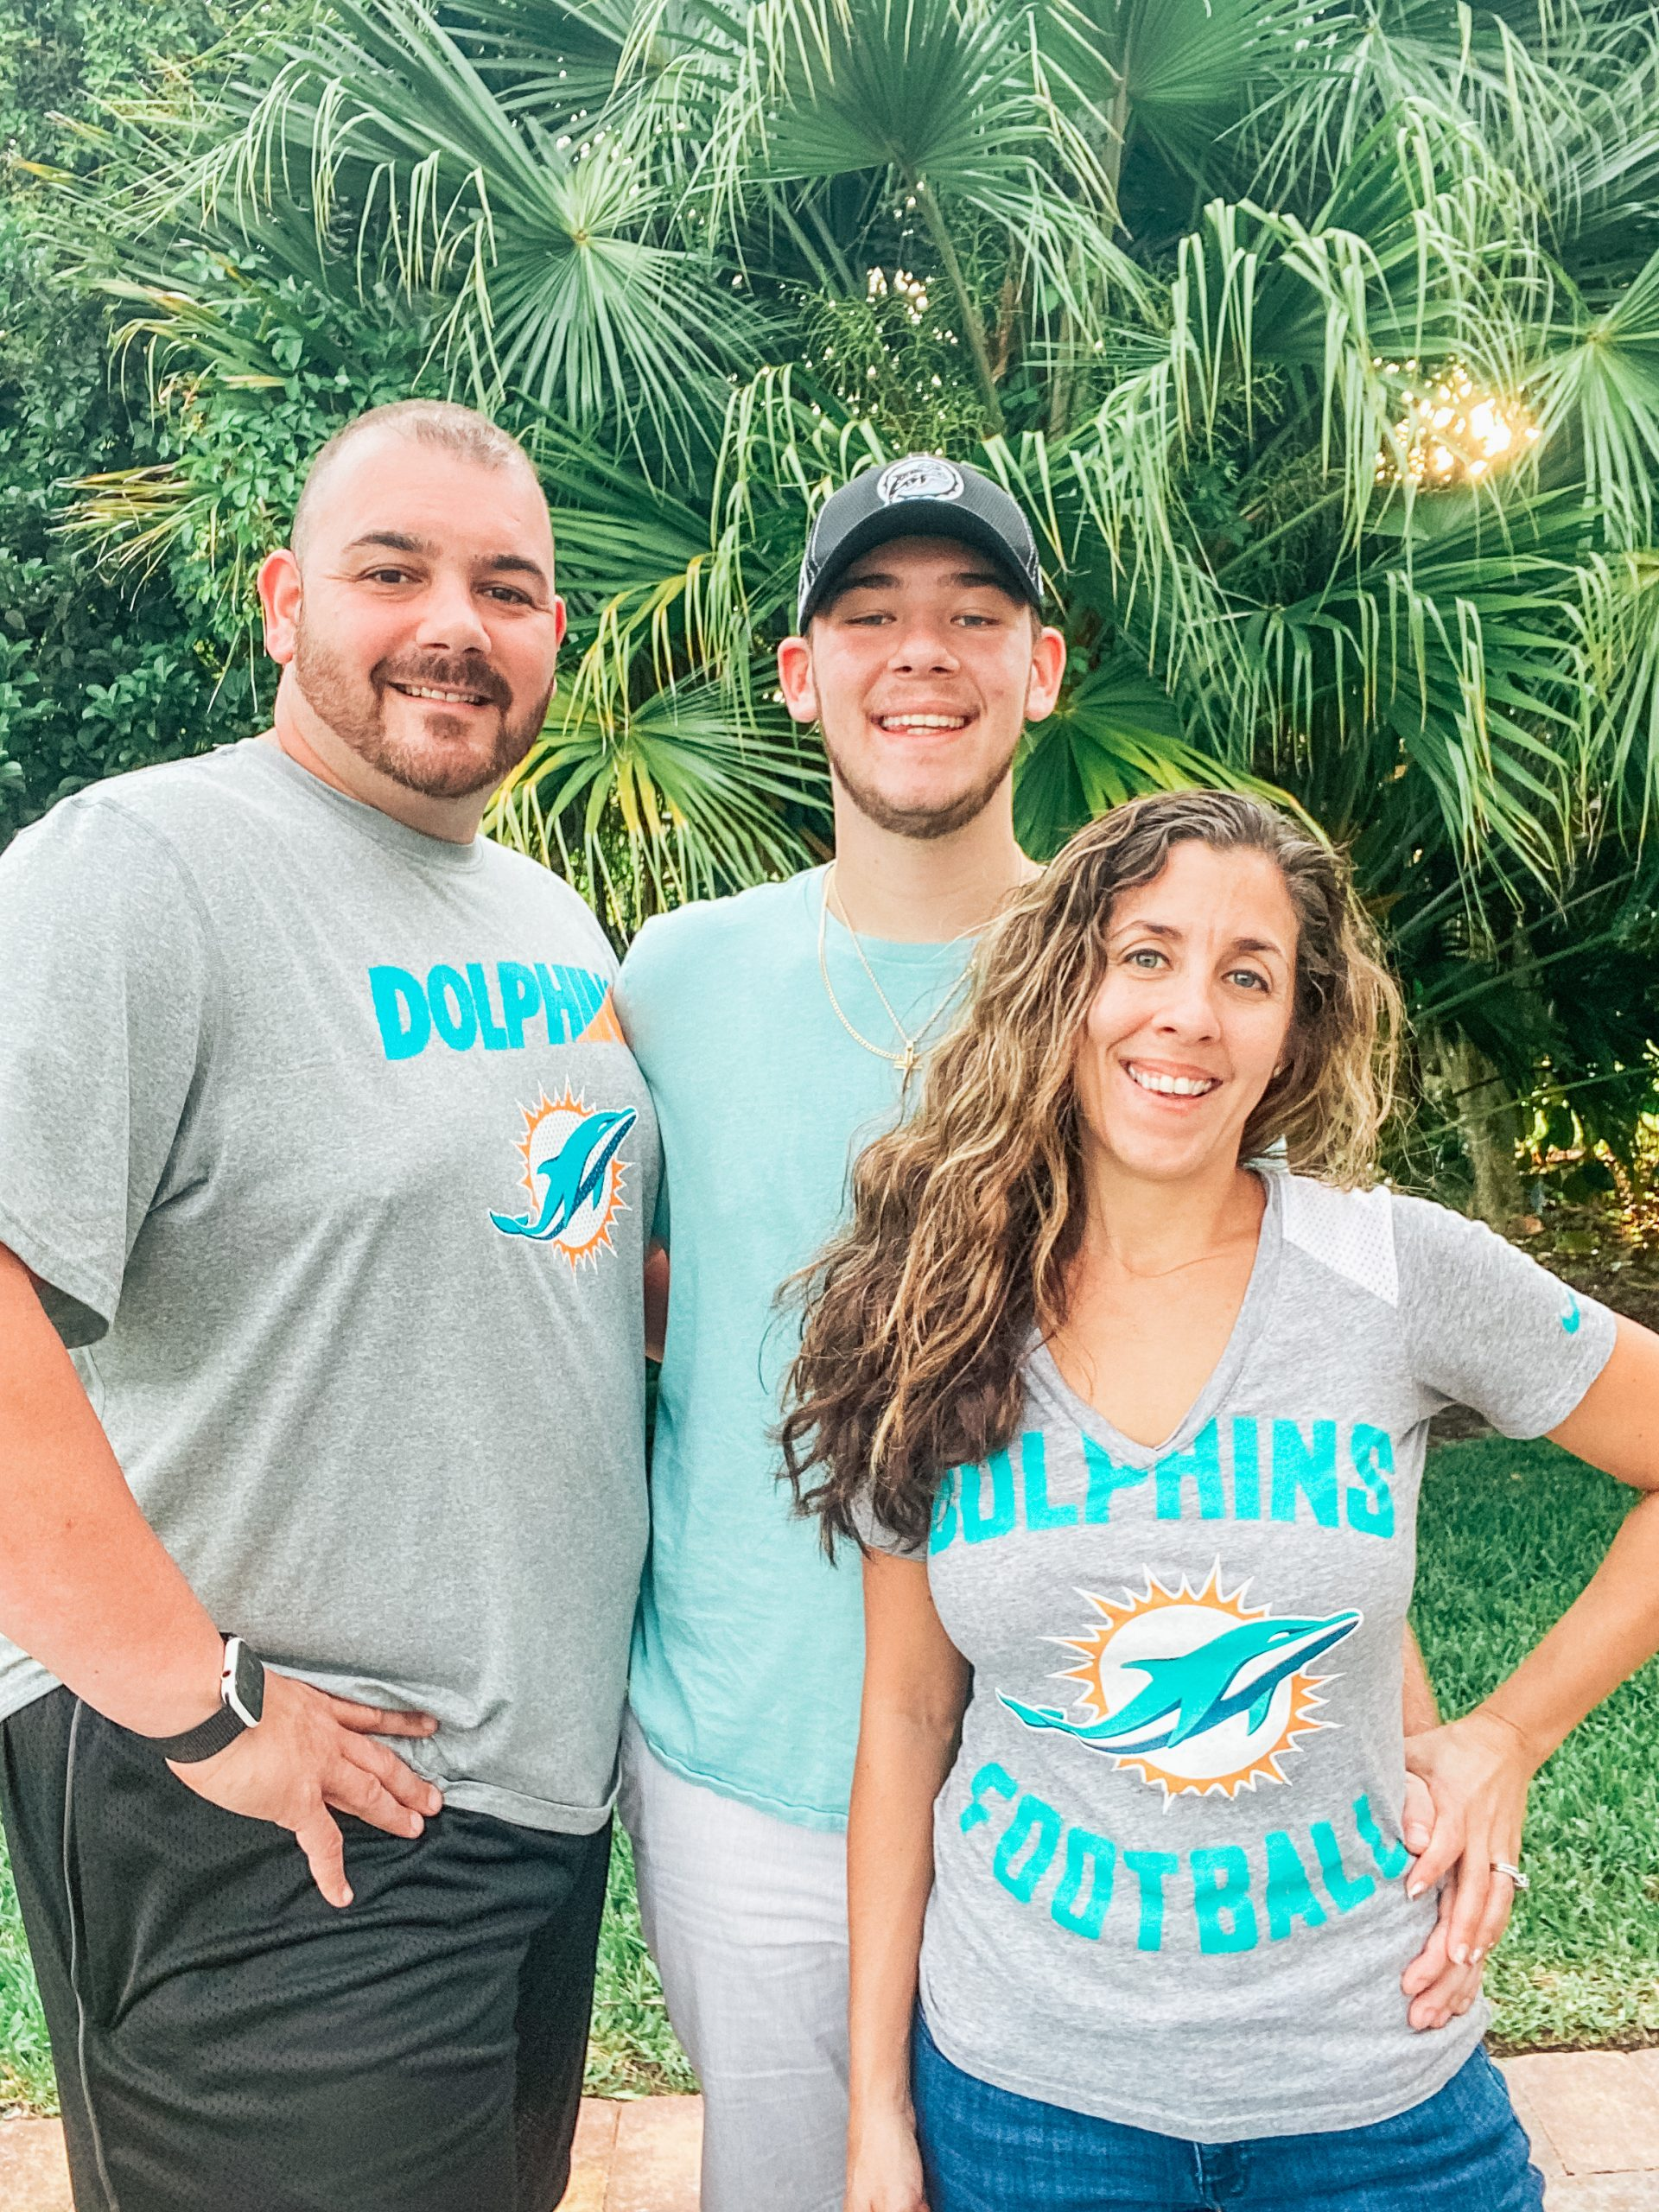 Family in Miami Dolphins clothes